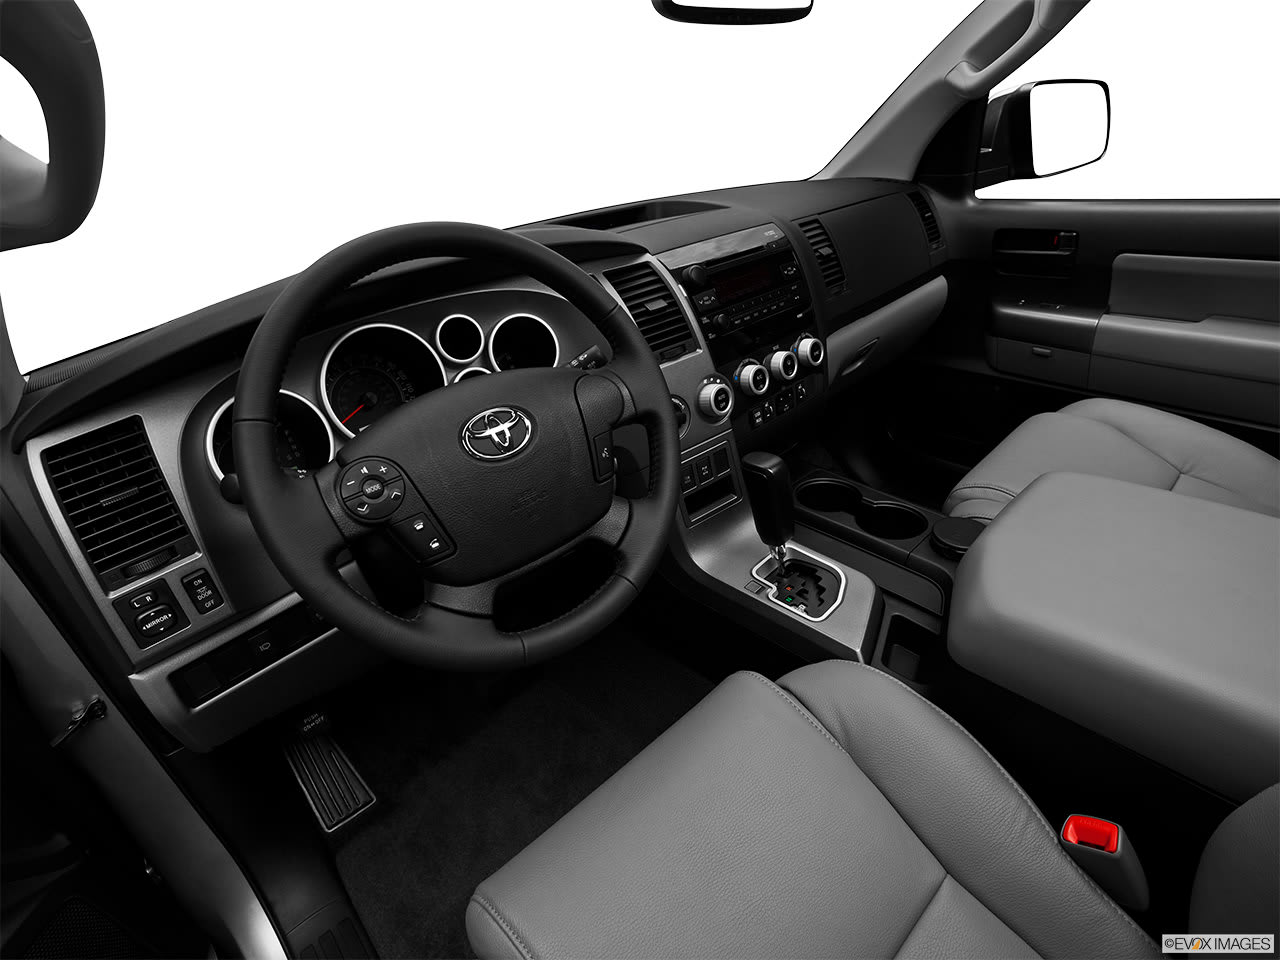 Toyota Sequoia 2012 Interior